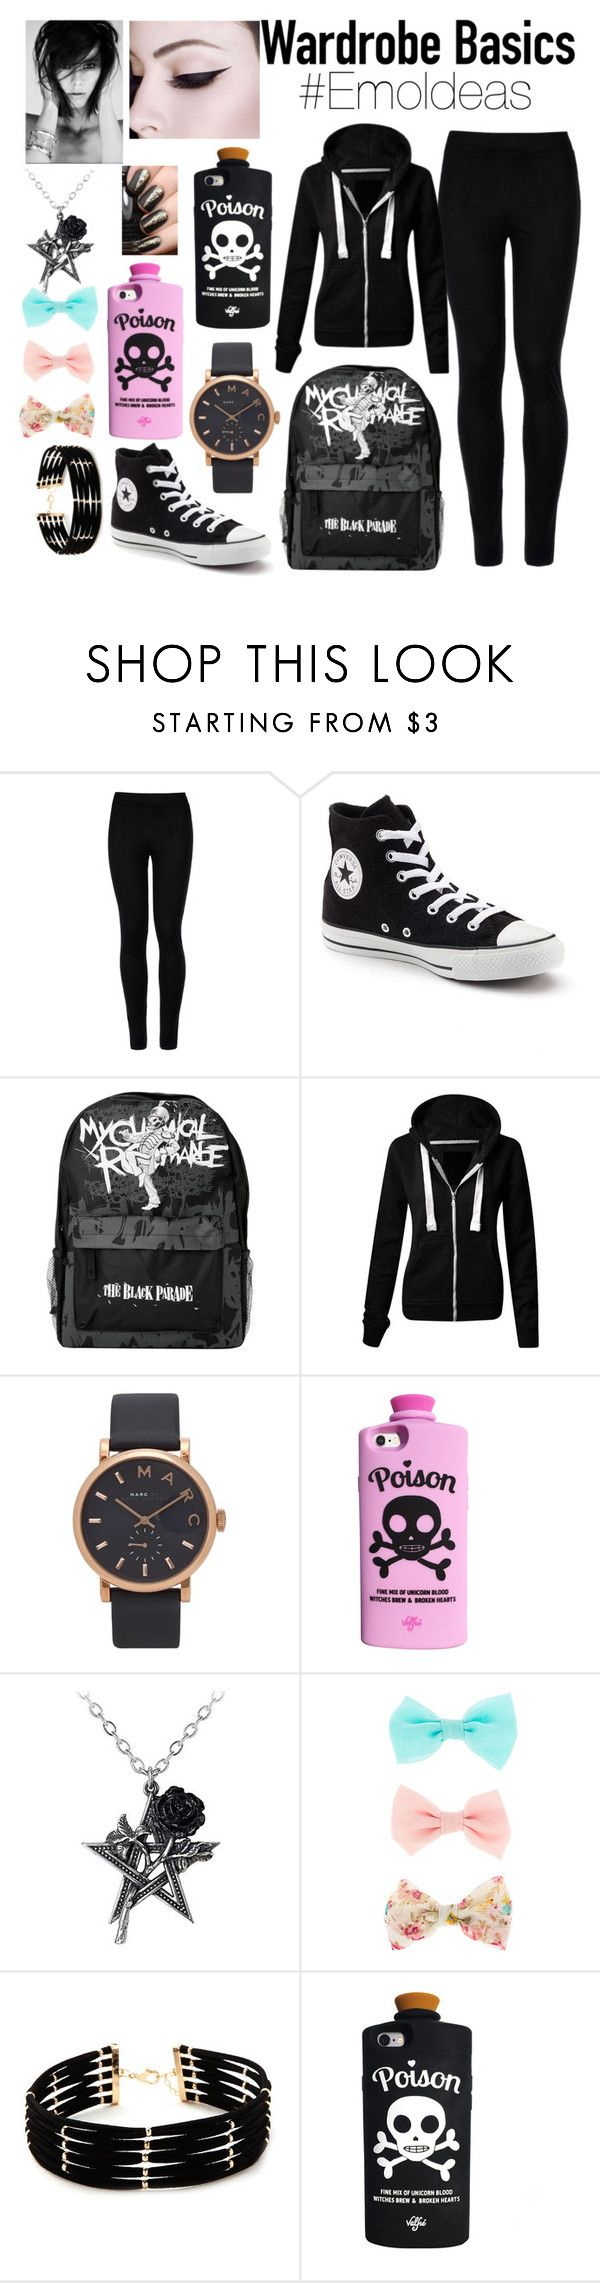 """Emo Clothing Ideas"" by alyssa-marie-bunag ❤ liked on Polyvore featuring Wolford, Converse, Marc Jacobs, Valfré and Forever 21"